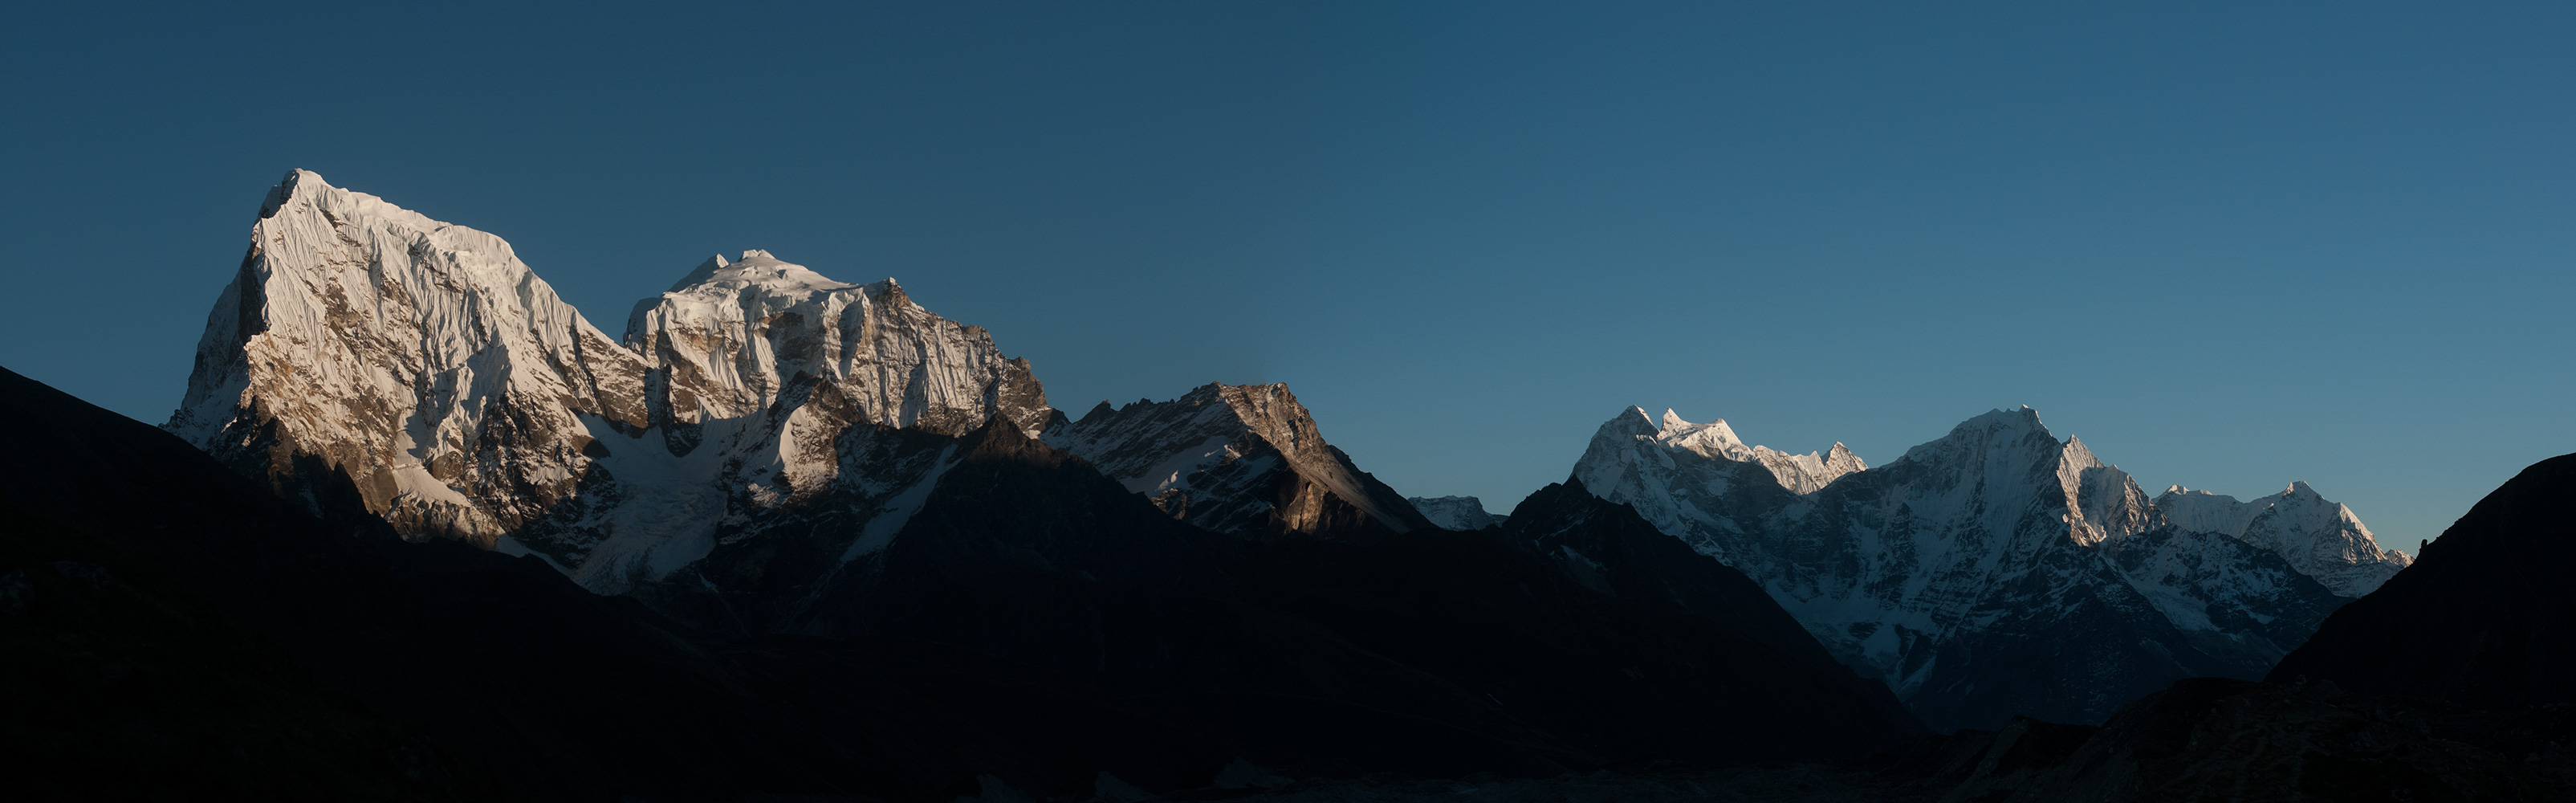 gokyo-south-cholatse_Panorama1